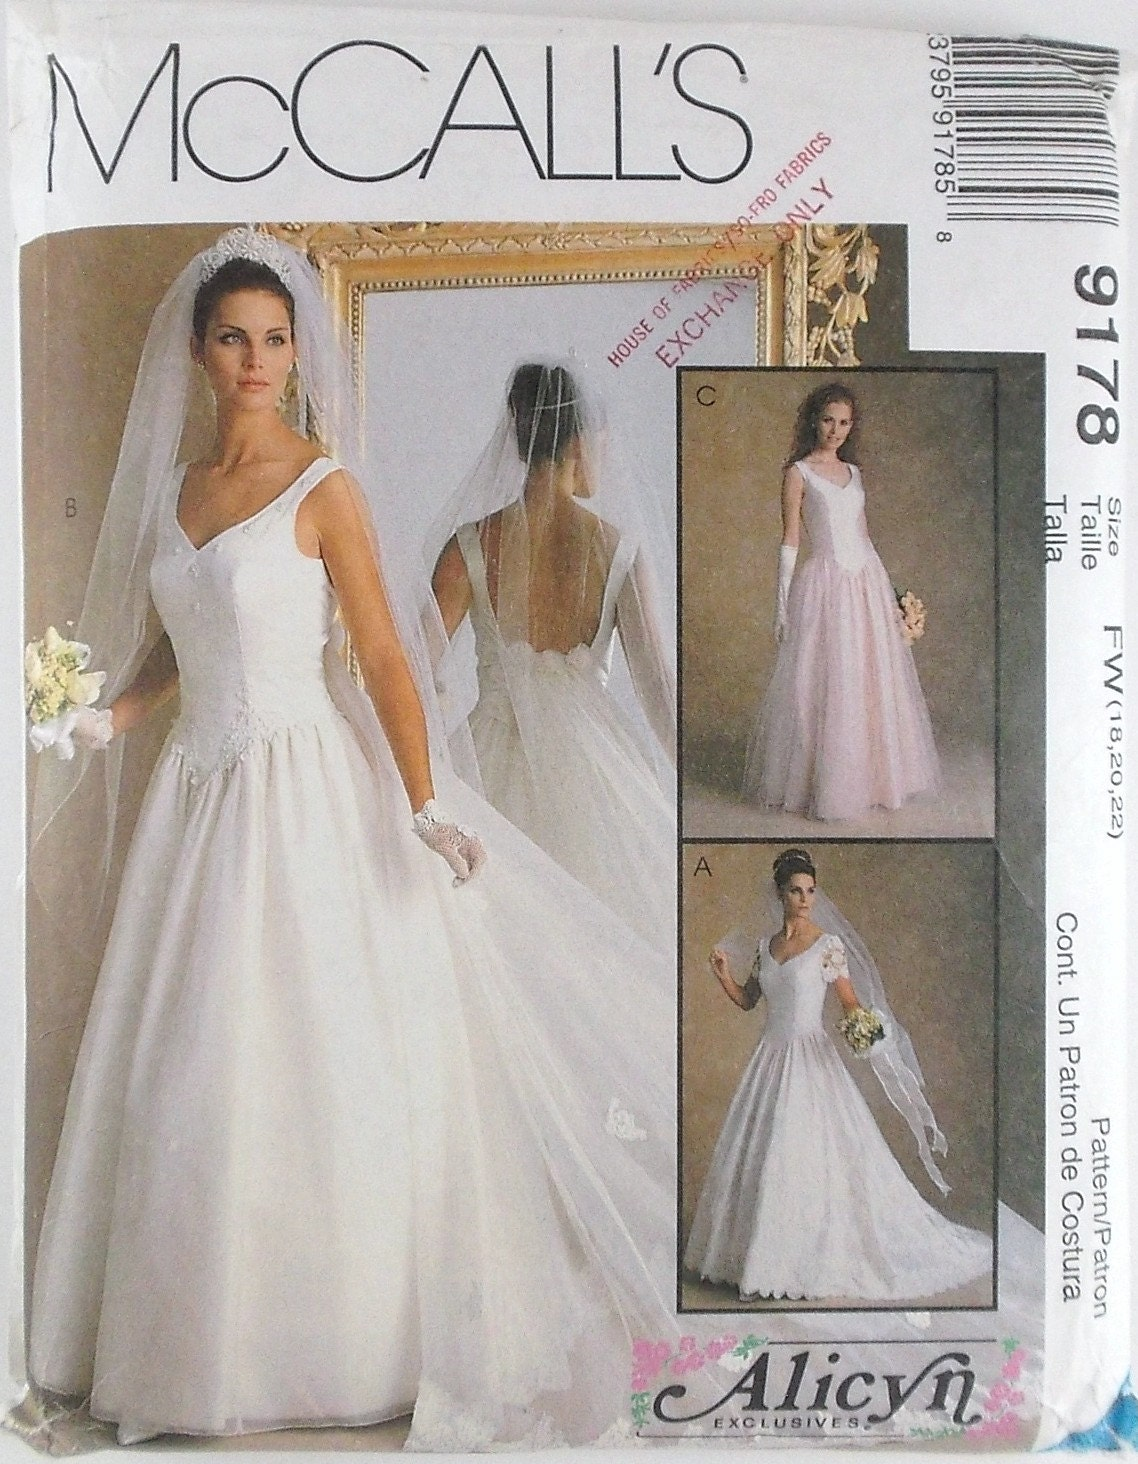 Misses bridal gowns dress plus sizes mccalls pattern 9178 for Wedding dress patterns plus size